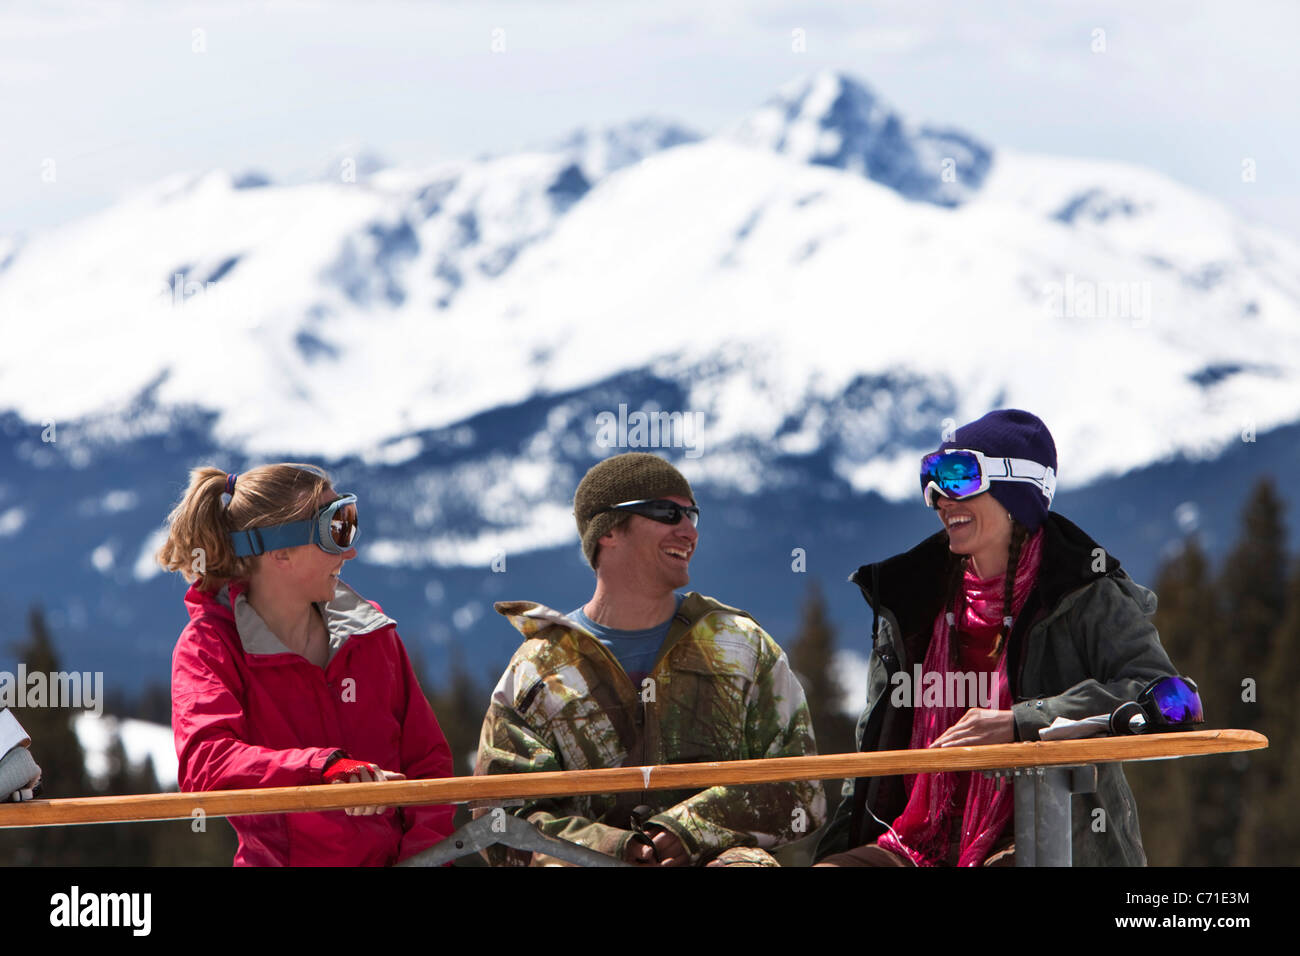 Three friends laugh and smile while enjoying a fun ski day in Colorado. - Stock Image